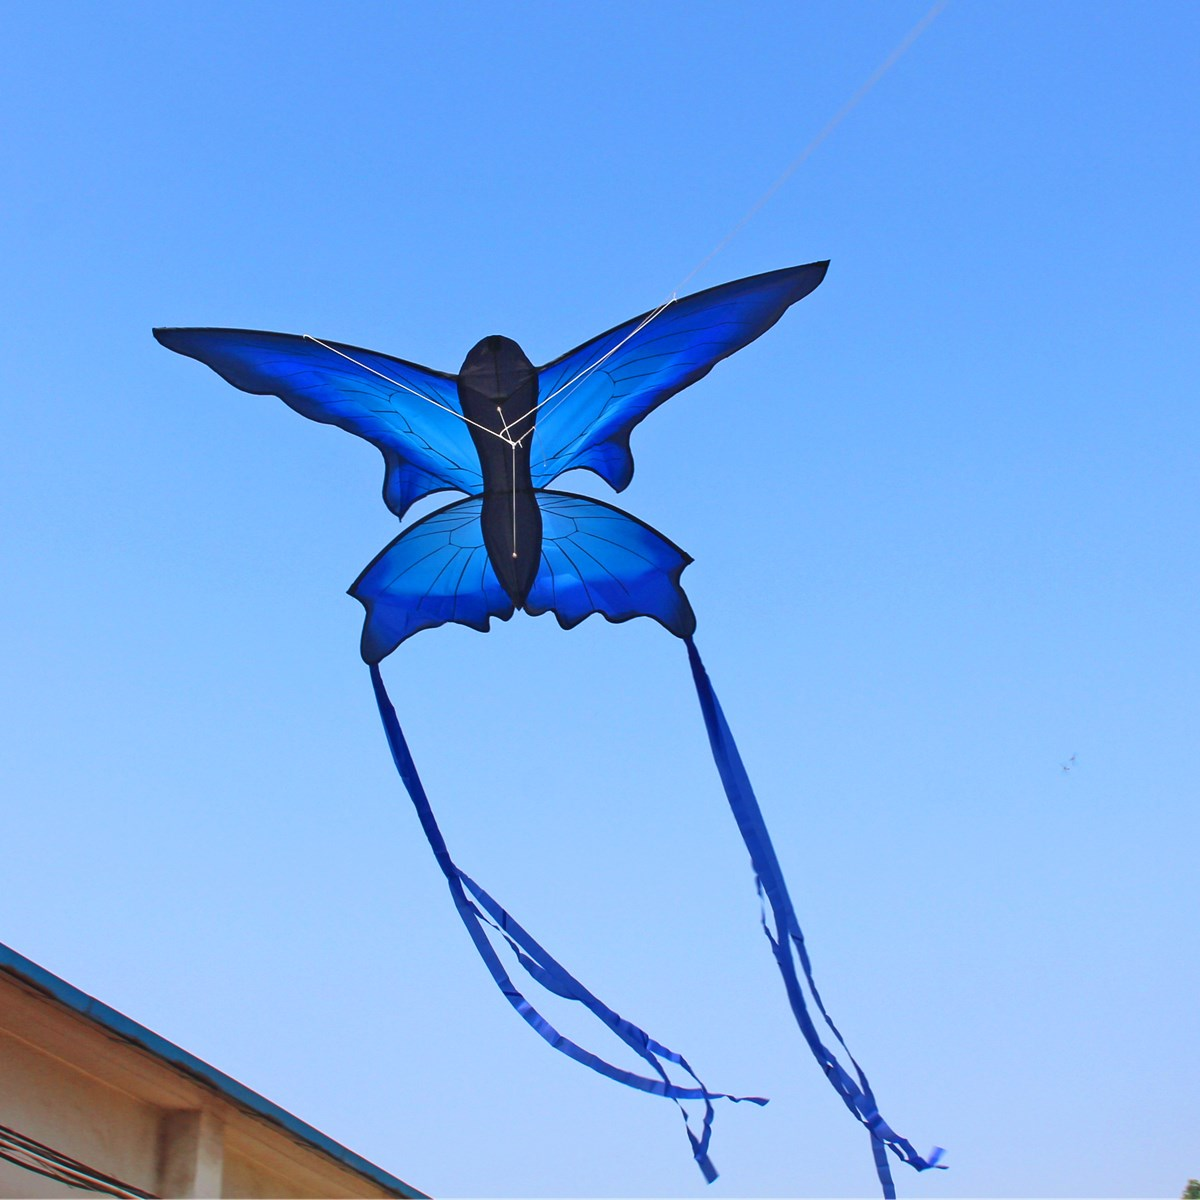 e86e6ff7cbdc 70x150cm Blue Beautiful Butterfly Kite Outdoor Fun Sports Flying Toy With  30M Control Bar and Line